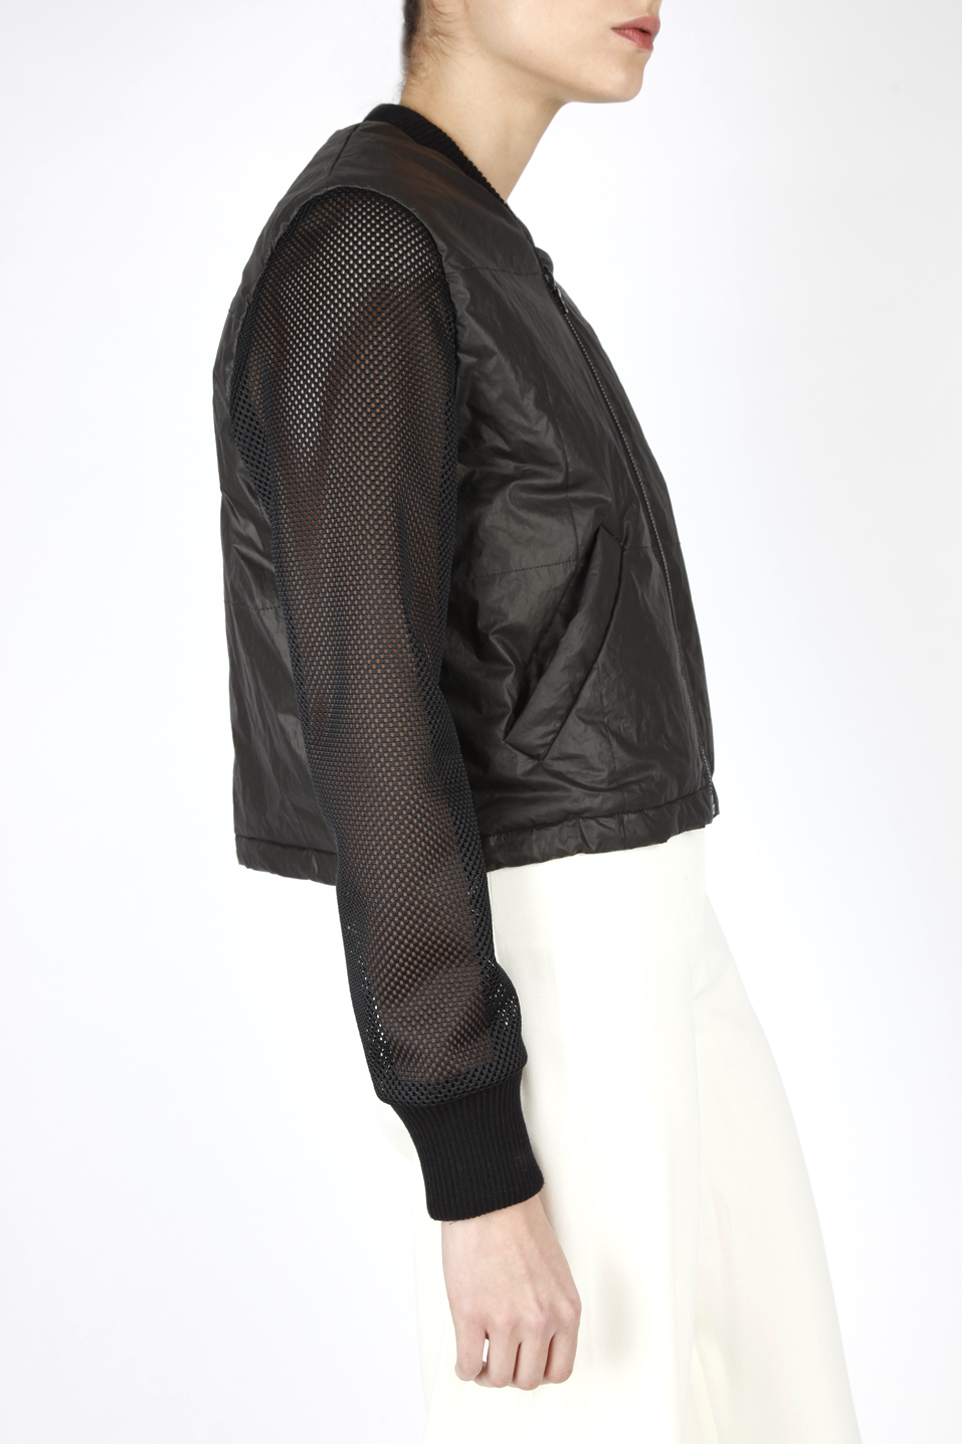 Christopher Raeburn Recycled Parachute Bomber $590